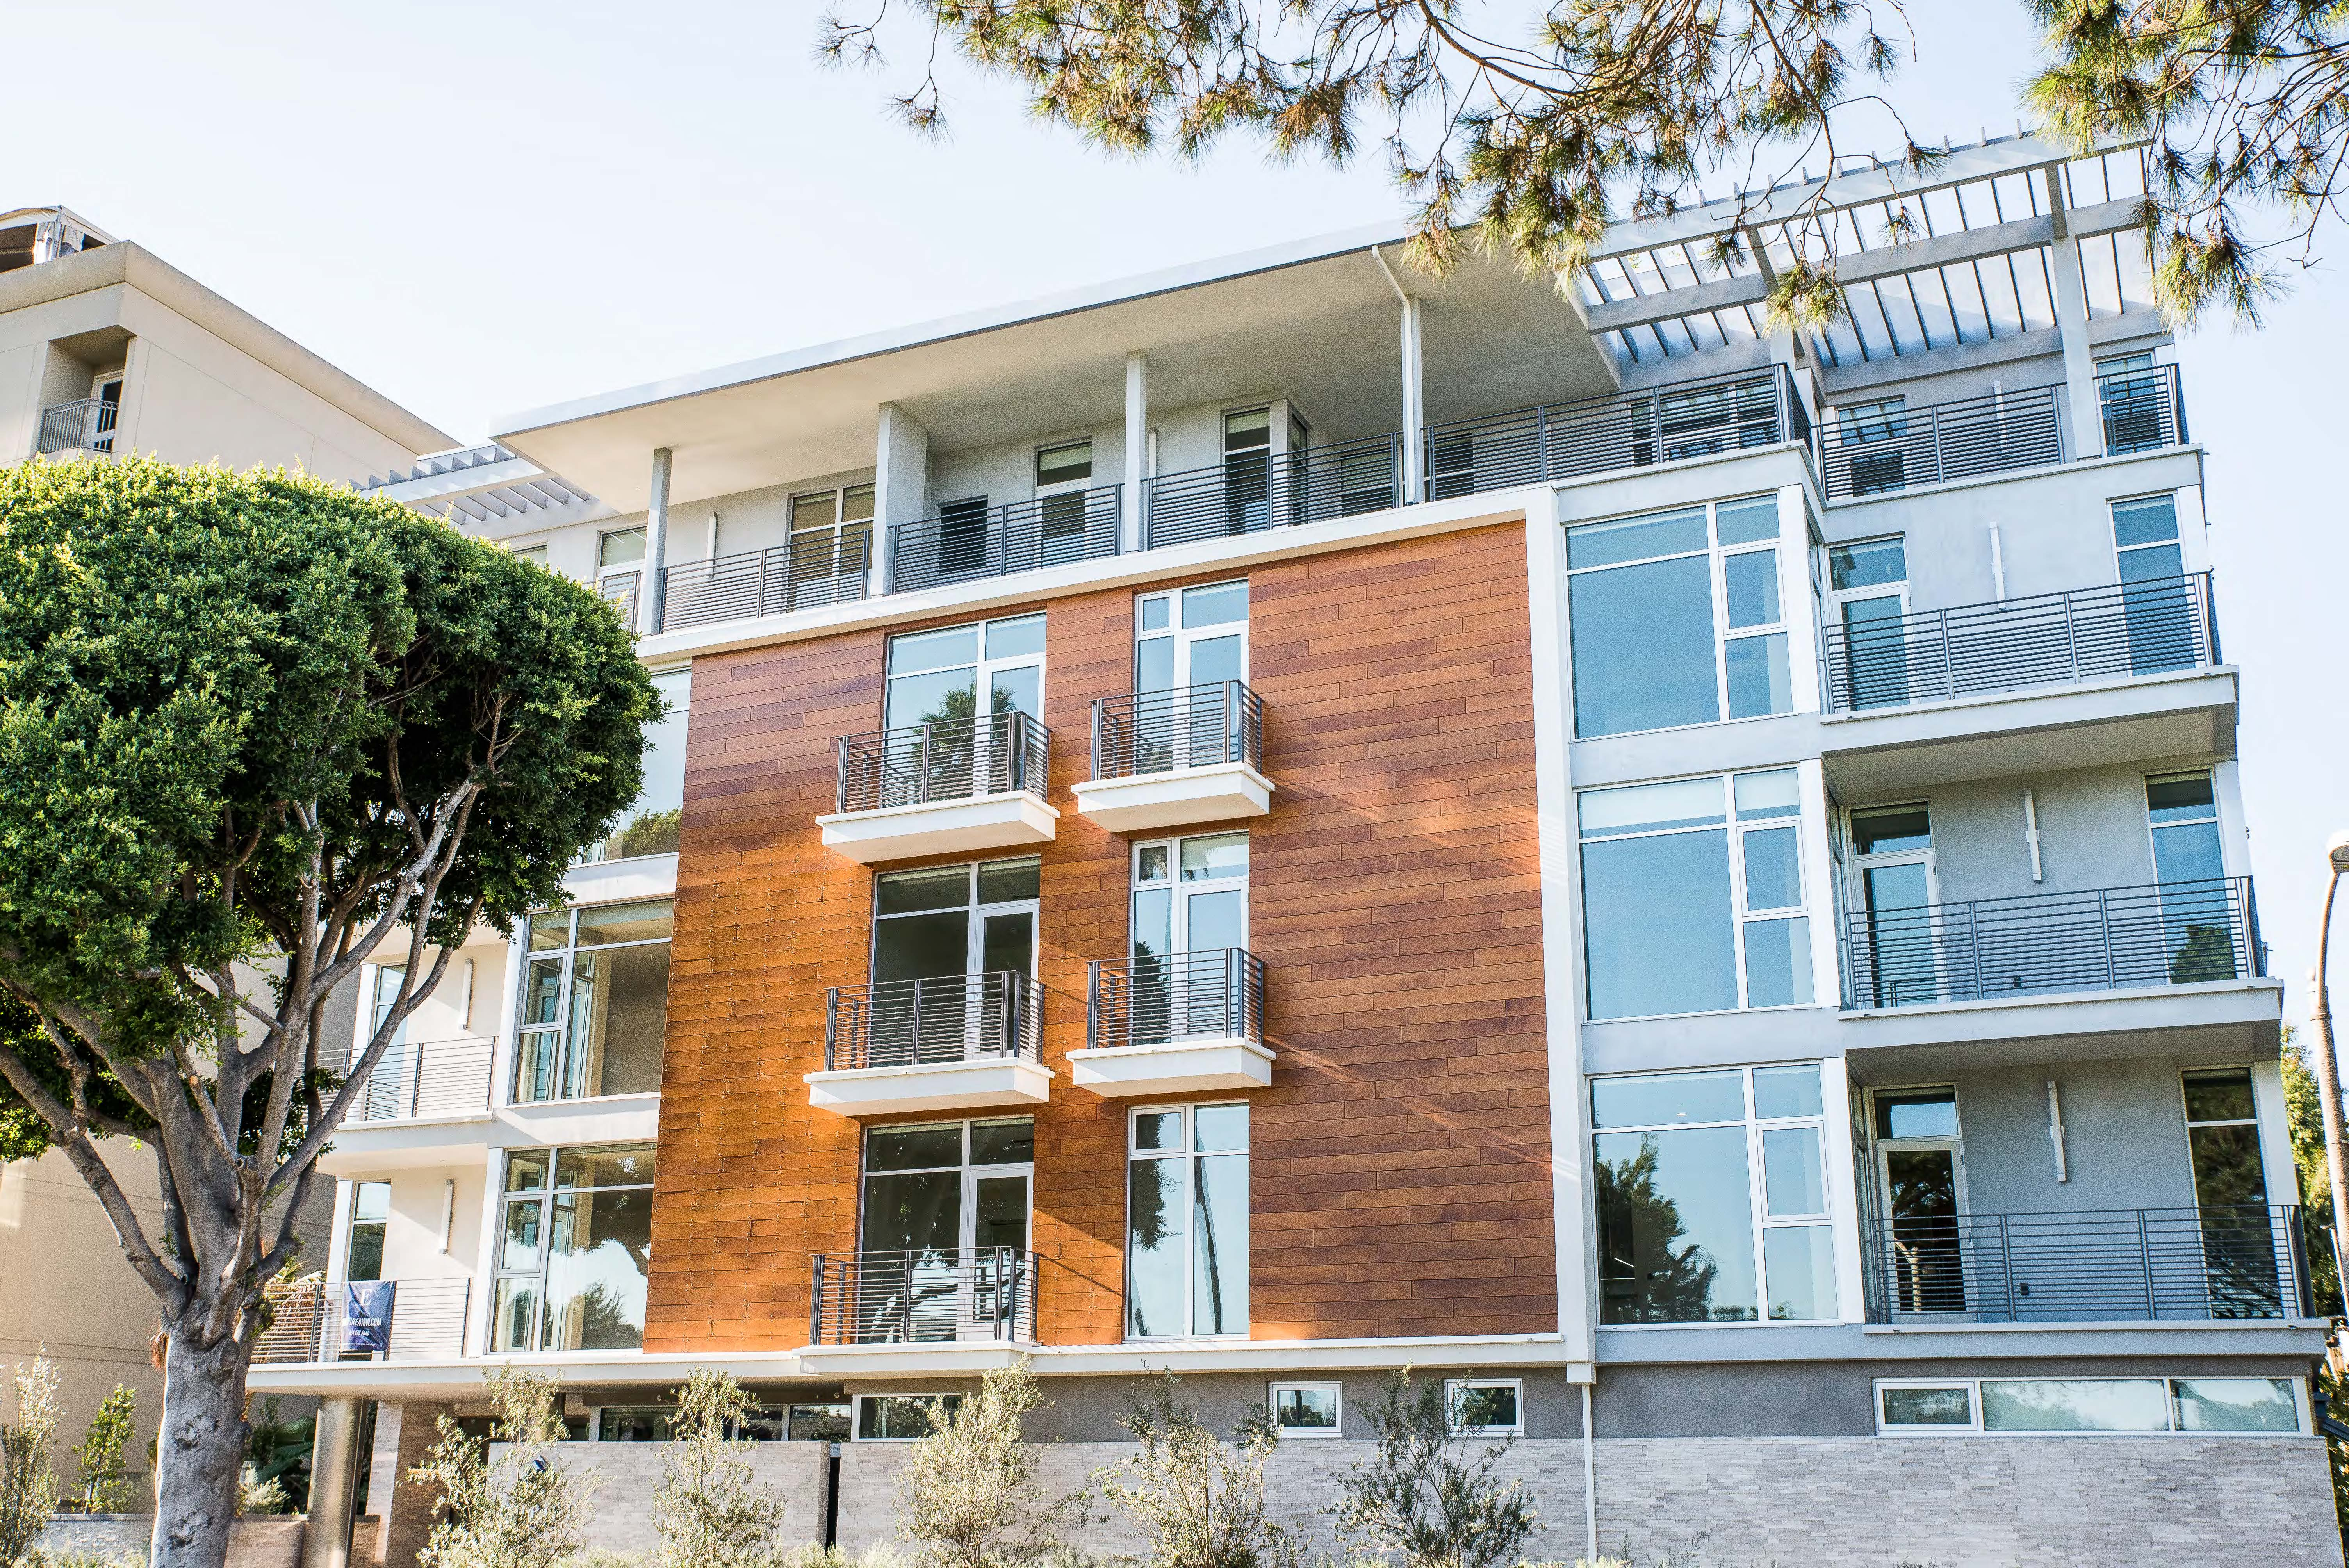 for rent in los angeles curbed la one bedrooms in new beverly hills apartment building rent for 5 800